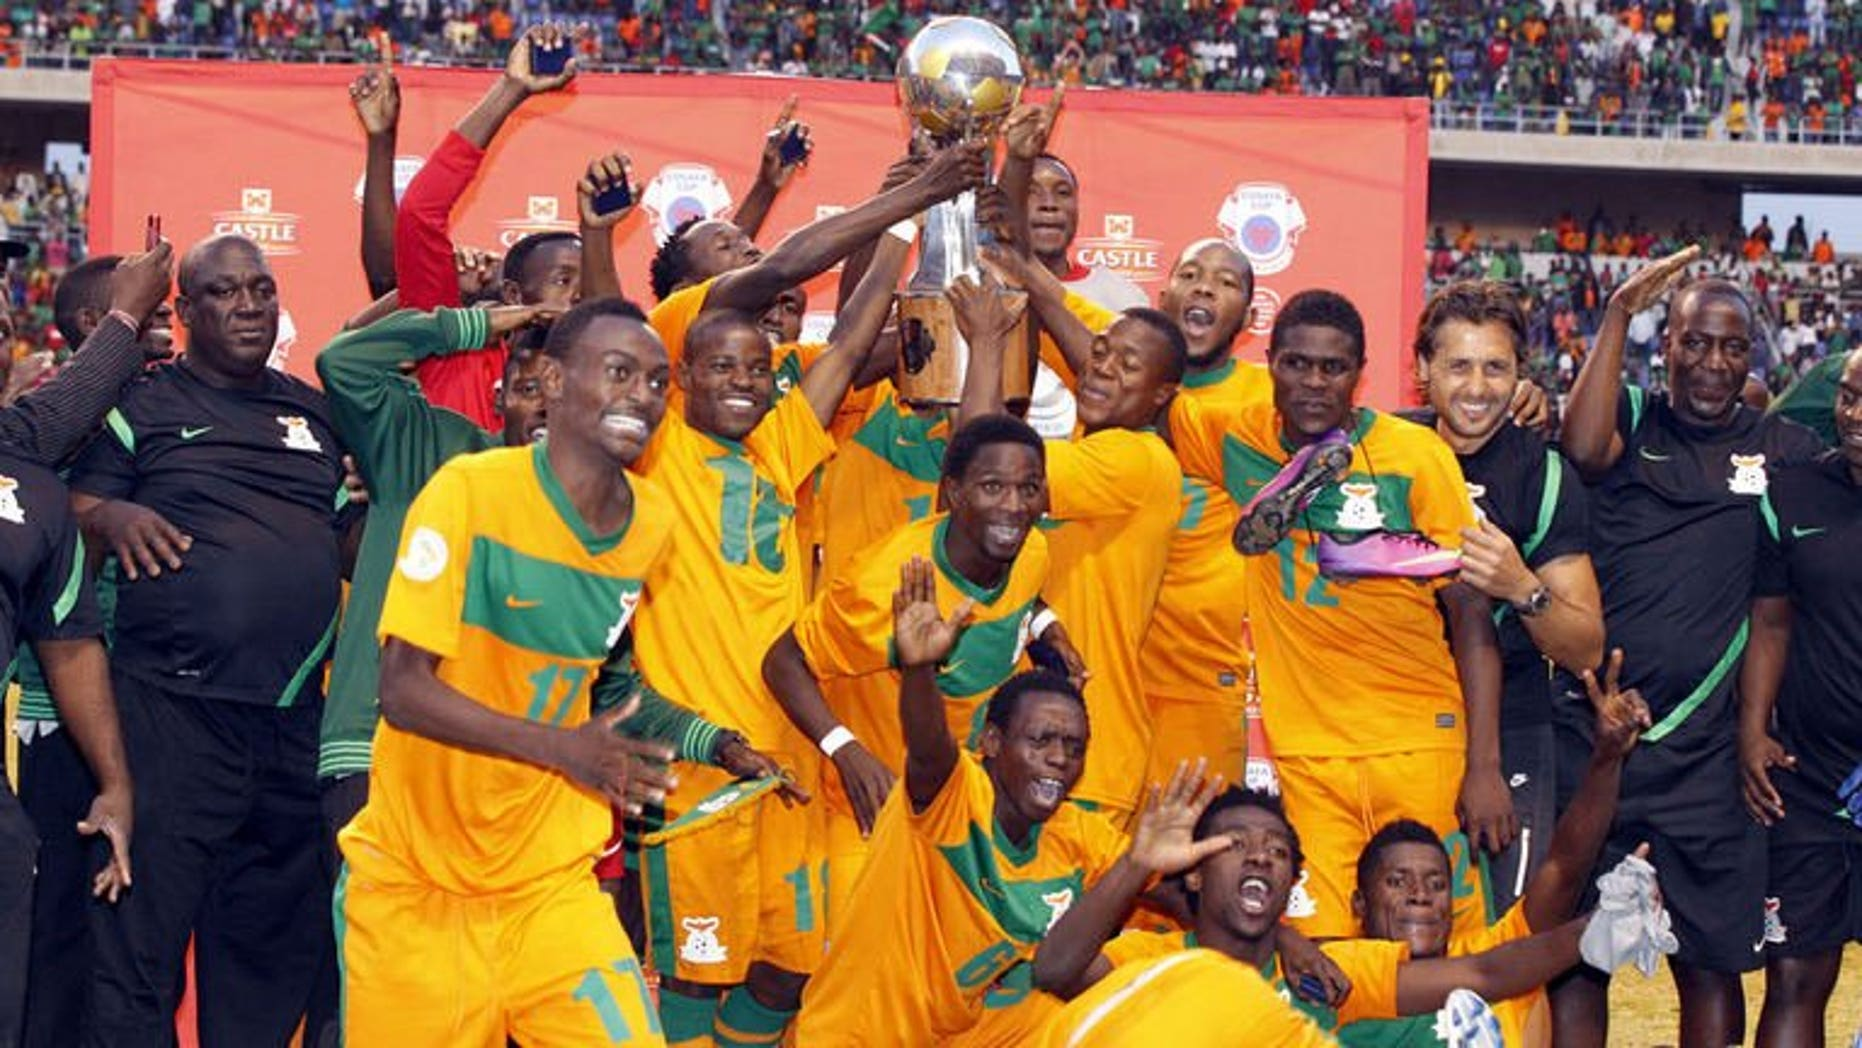 Zambia's players celebrate after beating Zimbabwe during their COSAFA tournament final match in Ndola, on July 20, 2013. Coach Herve Renard has admitted that hosts Zambia were lucky to defeat Zimbabwe.